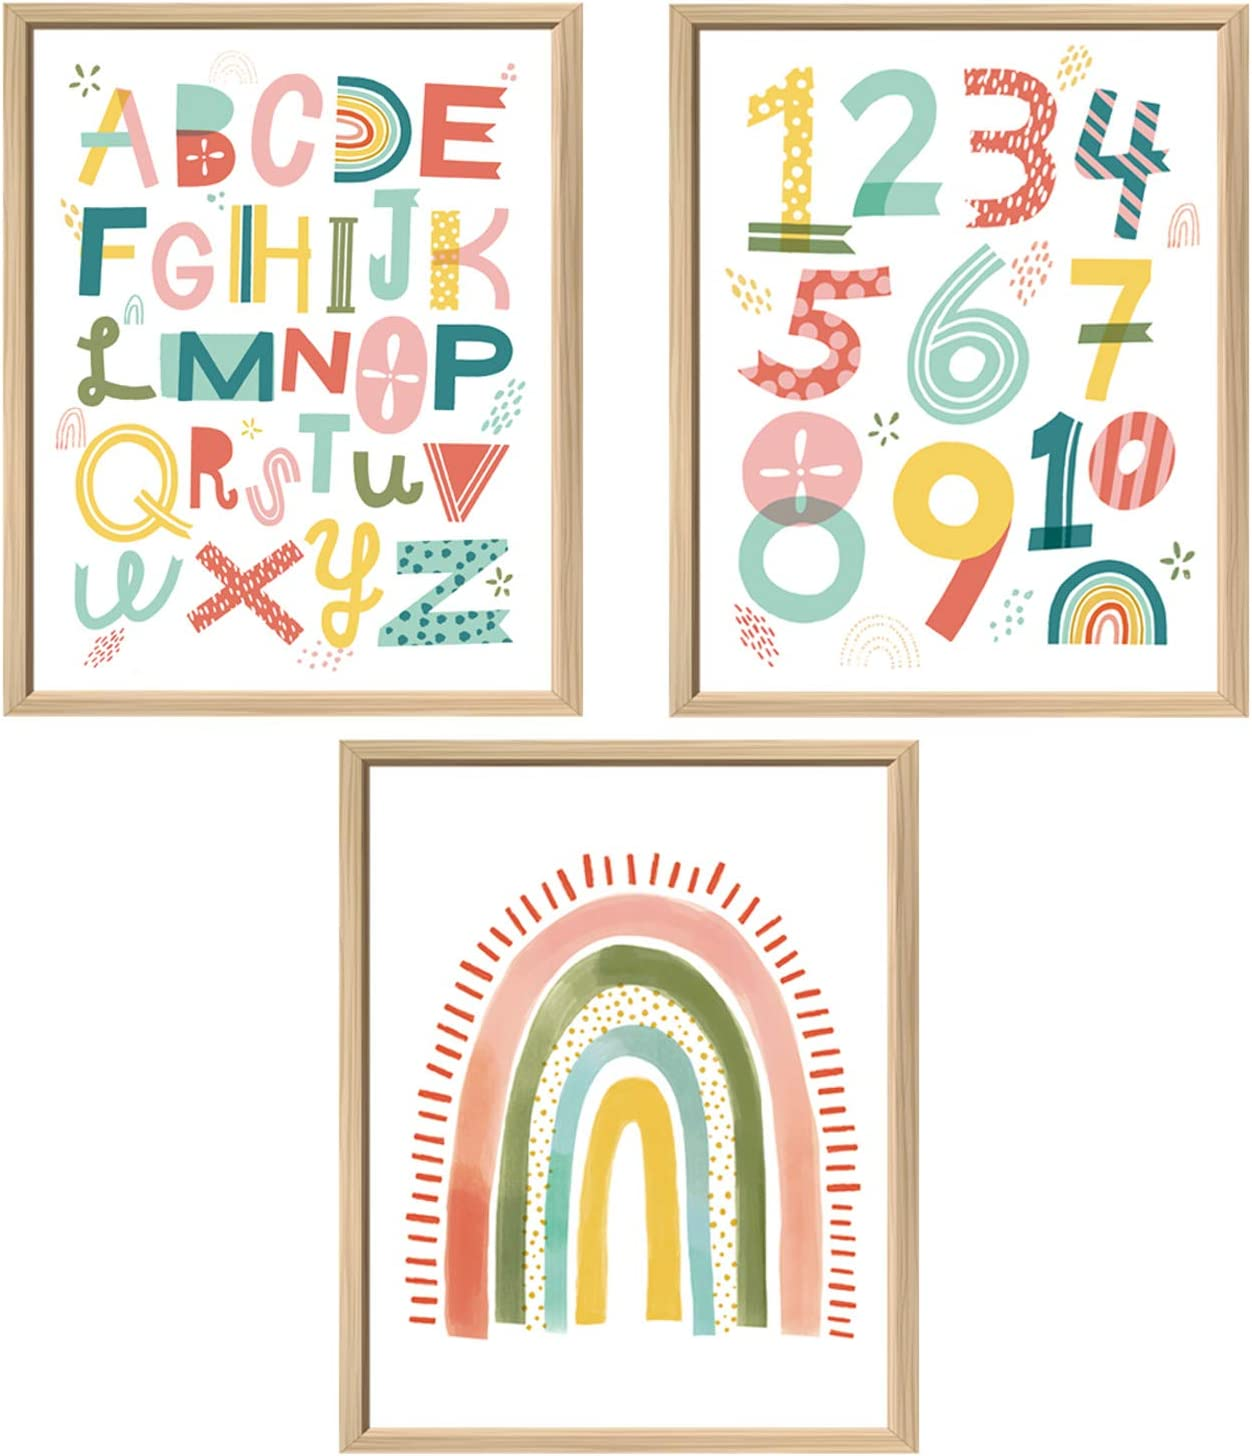 Nursery Wall Decor 3 Double-Sided Kids Posters | Alphabet Poster, 123 & Rainbow Decor | Kids Room & Playroom Decor Wall Art, Baby Girl/Boy Room Decor | ABC Poster for Toddlers Wall